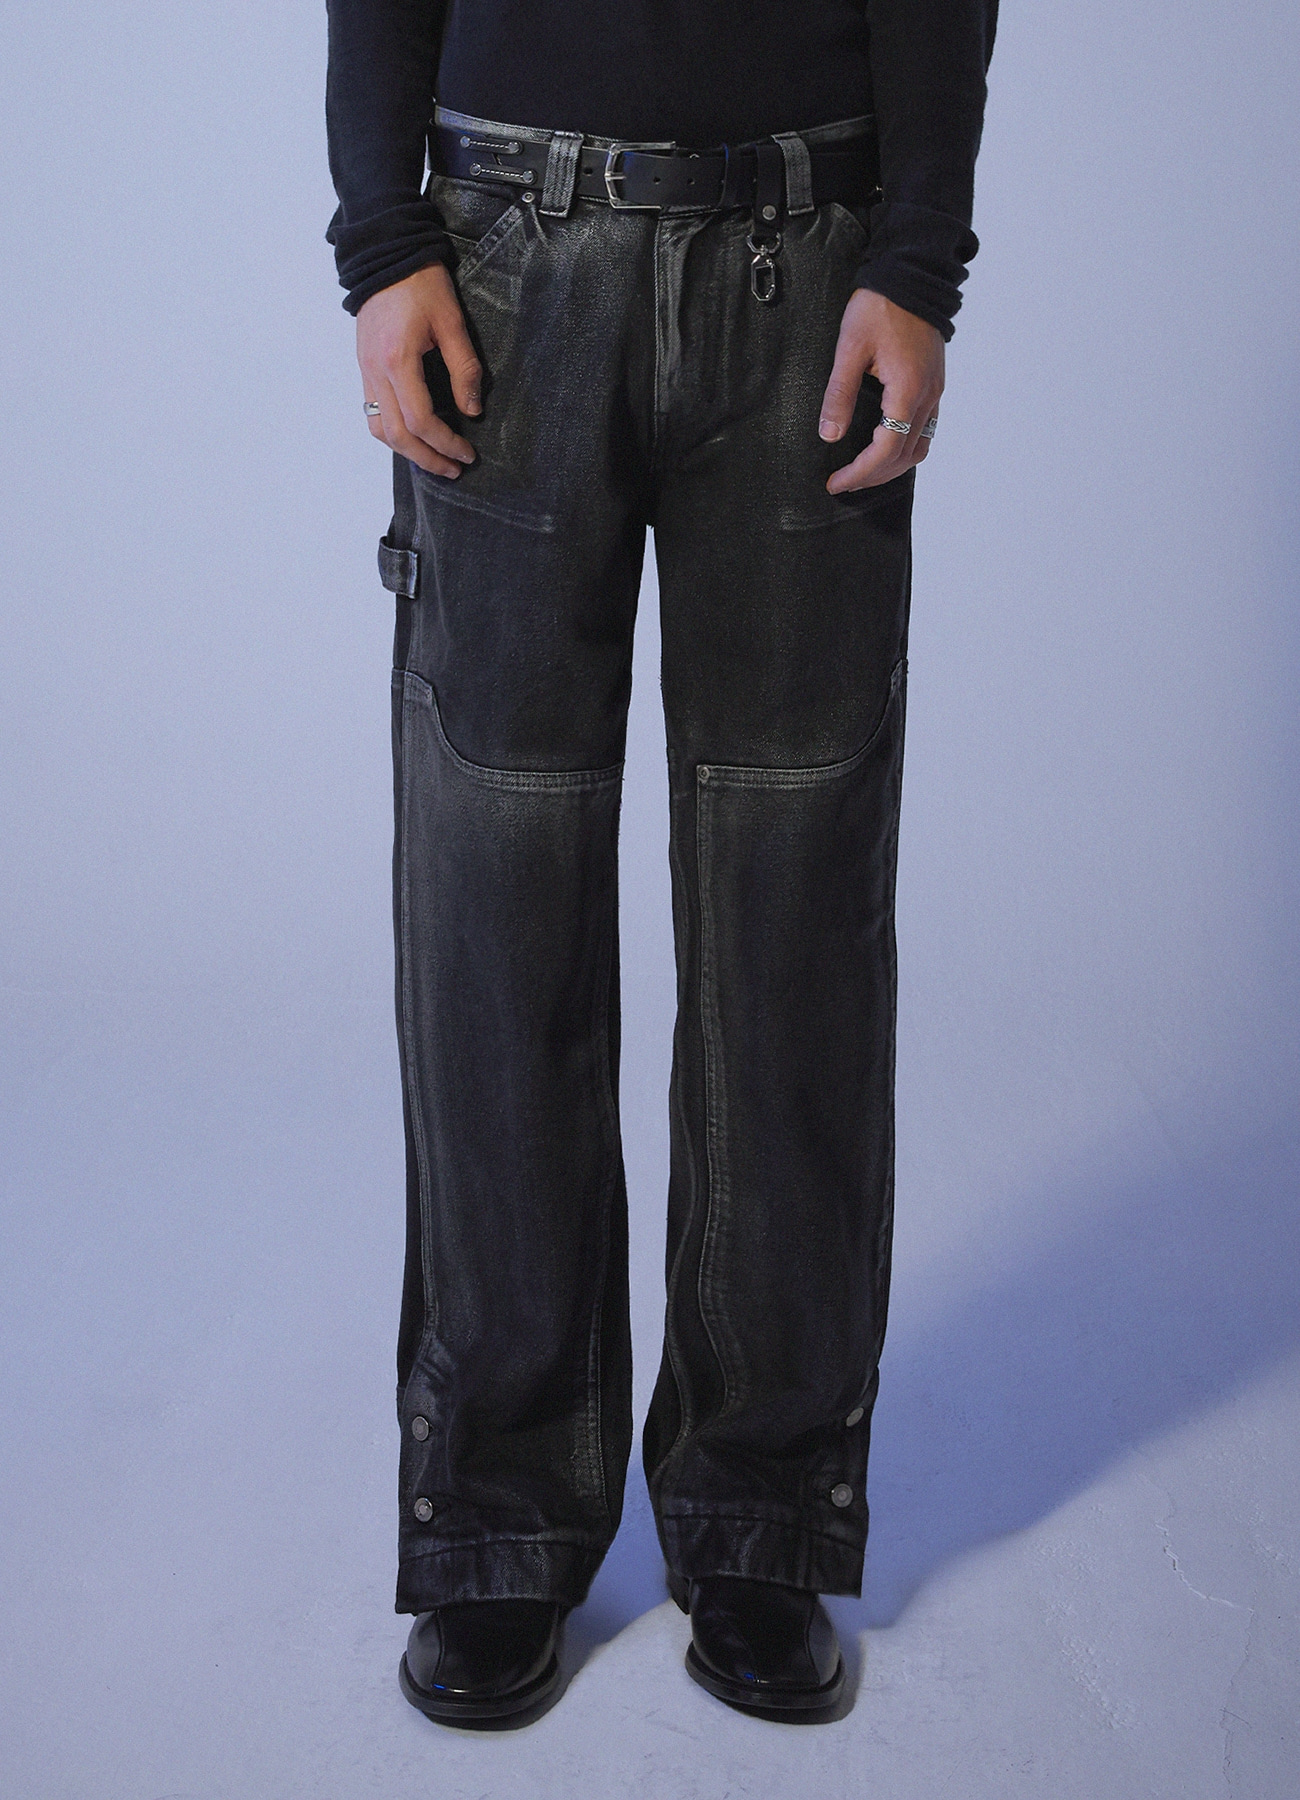 Foggy Dew Carpenter Denim Pants - Black [10/29일 예약발송]